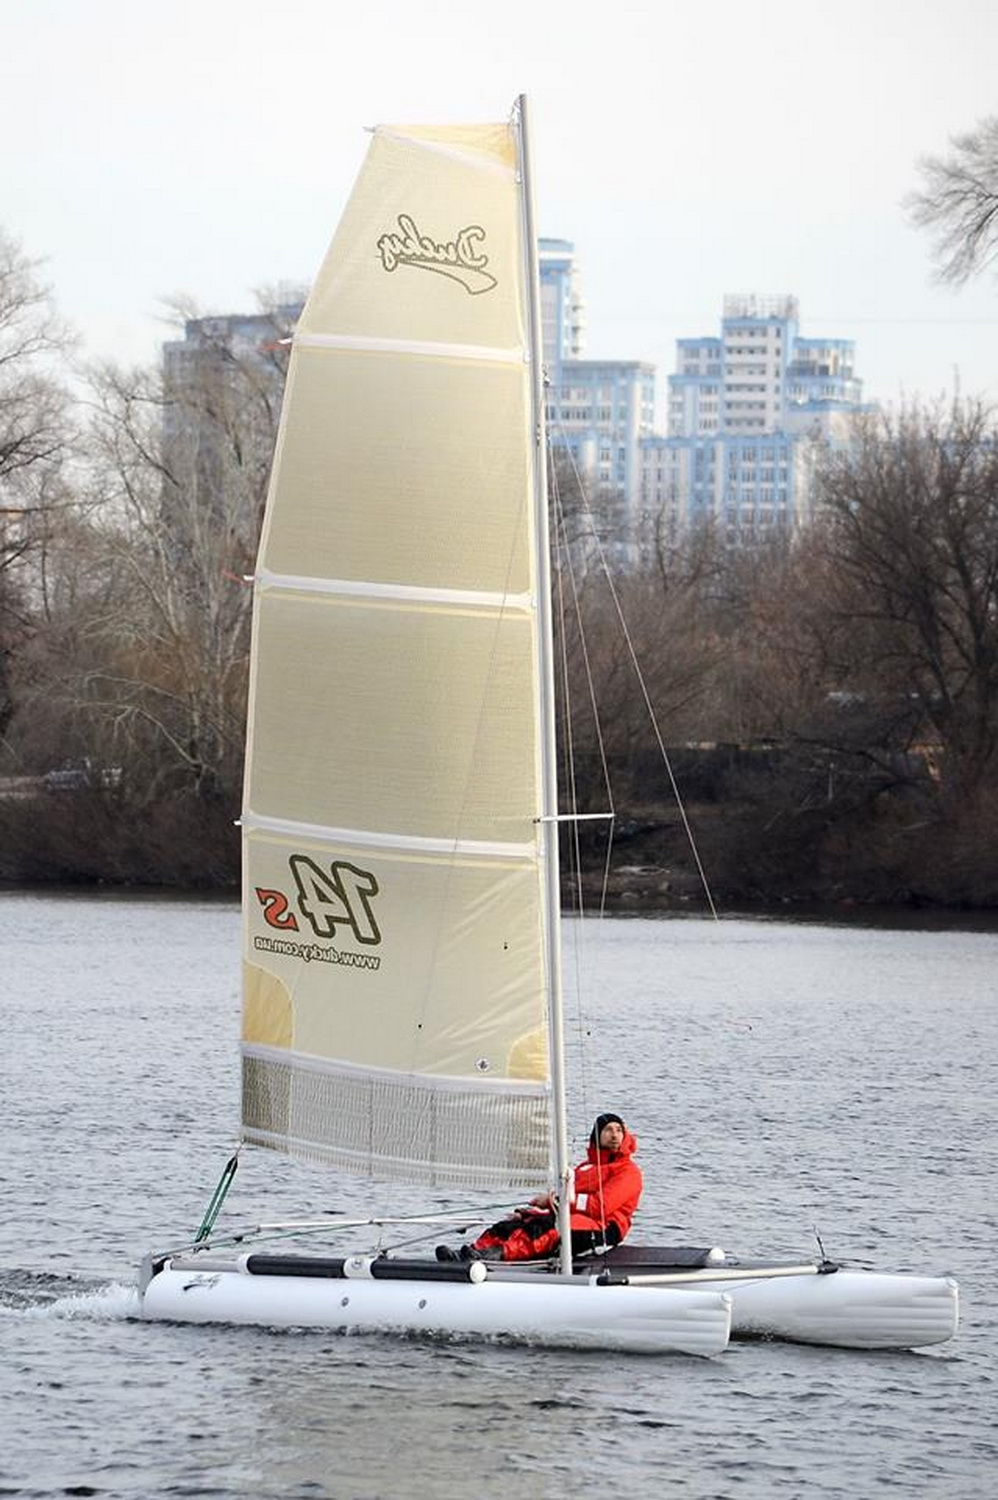 Inflatable sailing catamaran Ducky14s